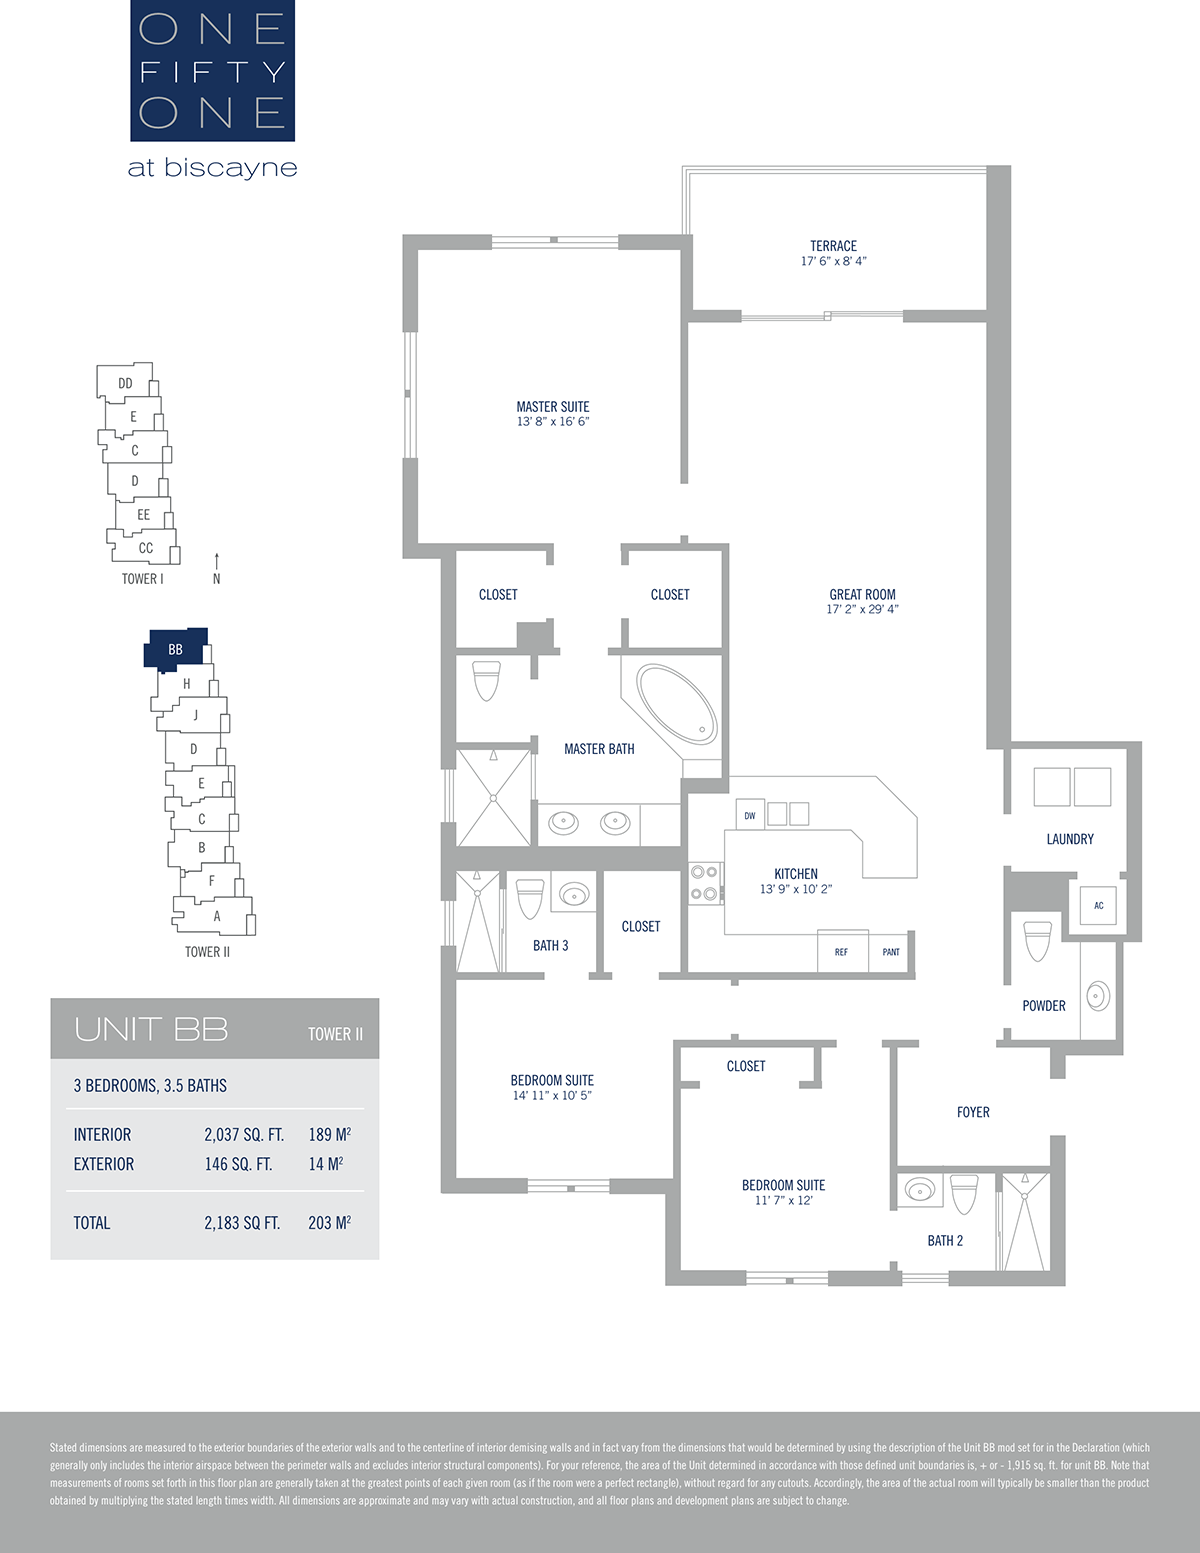 One Fifty One At Biscayne - Floorplan 6